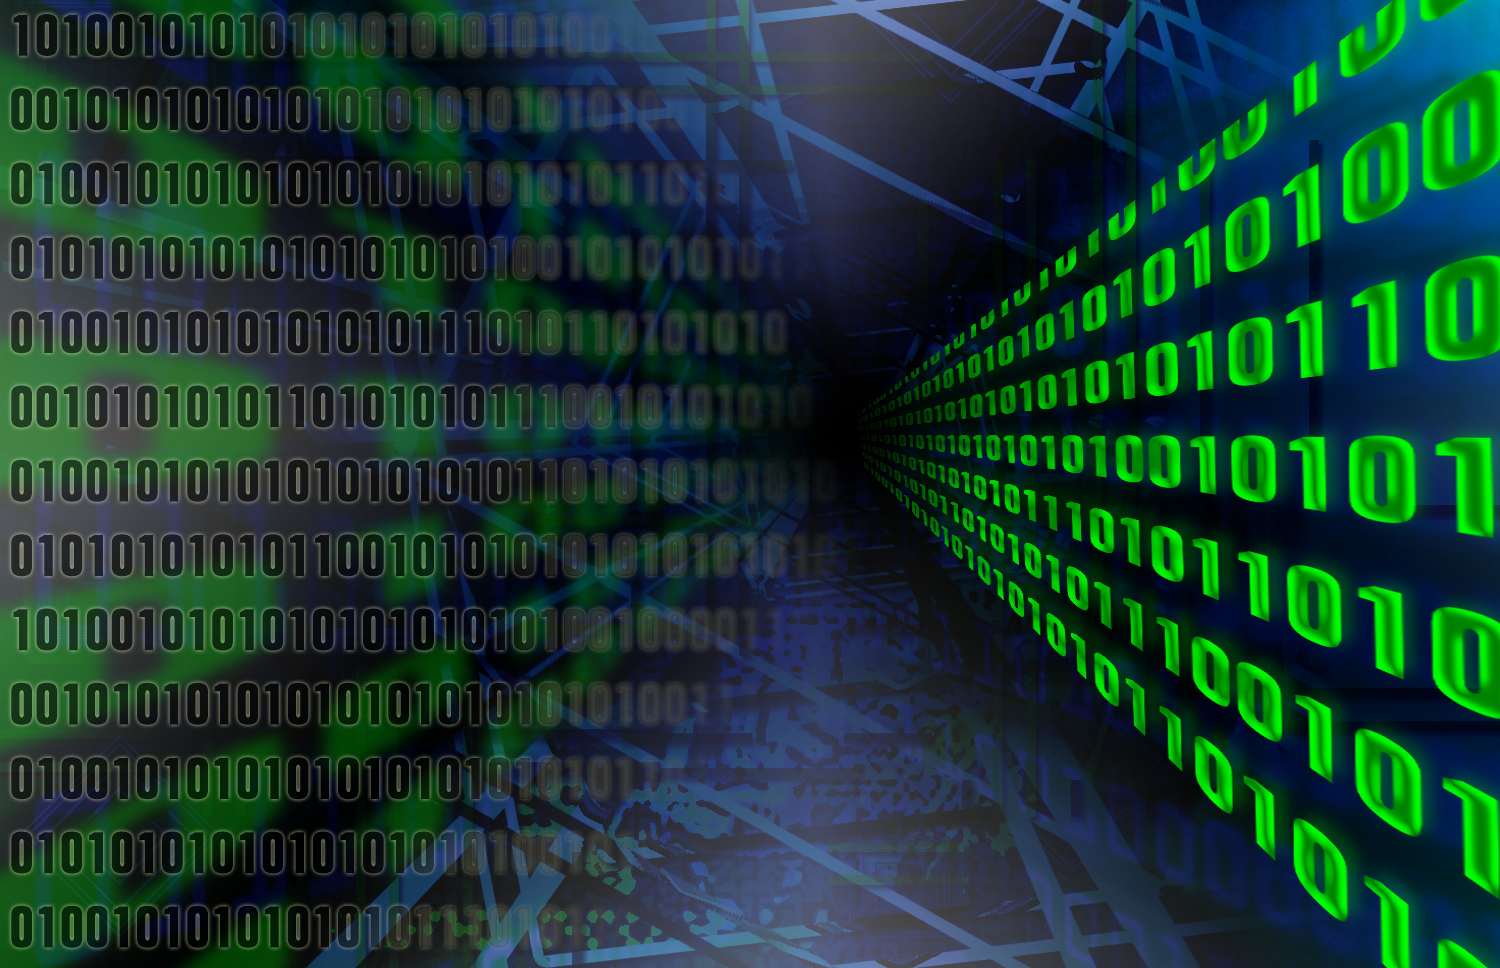 Lost in a data mine? Here's Your Guide to Understanding and